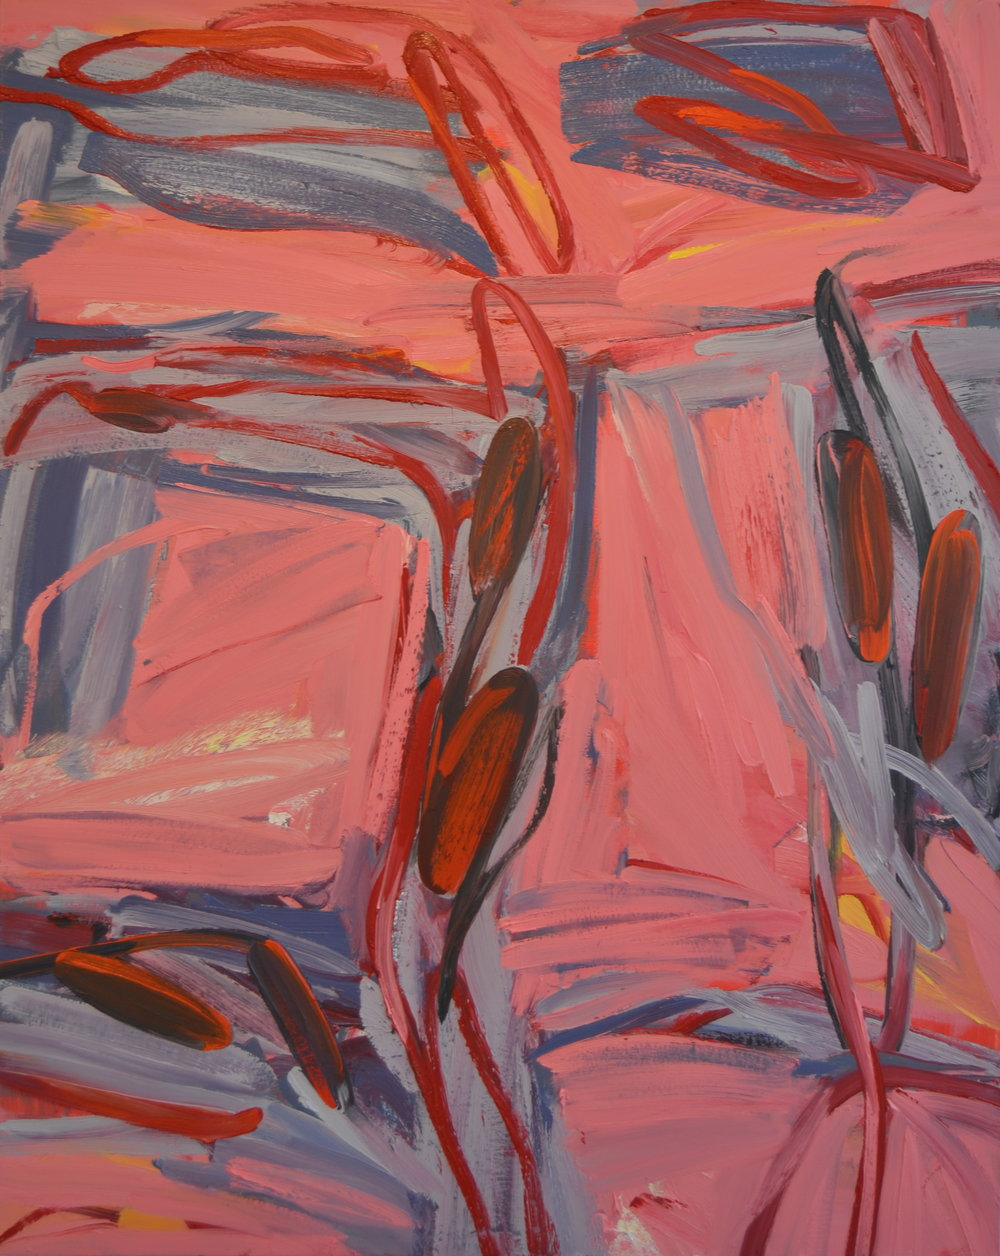 In the Pink,  2016 Oil on canvas 50 x 60 inches